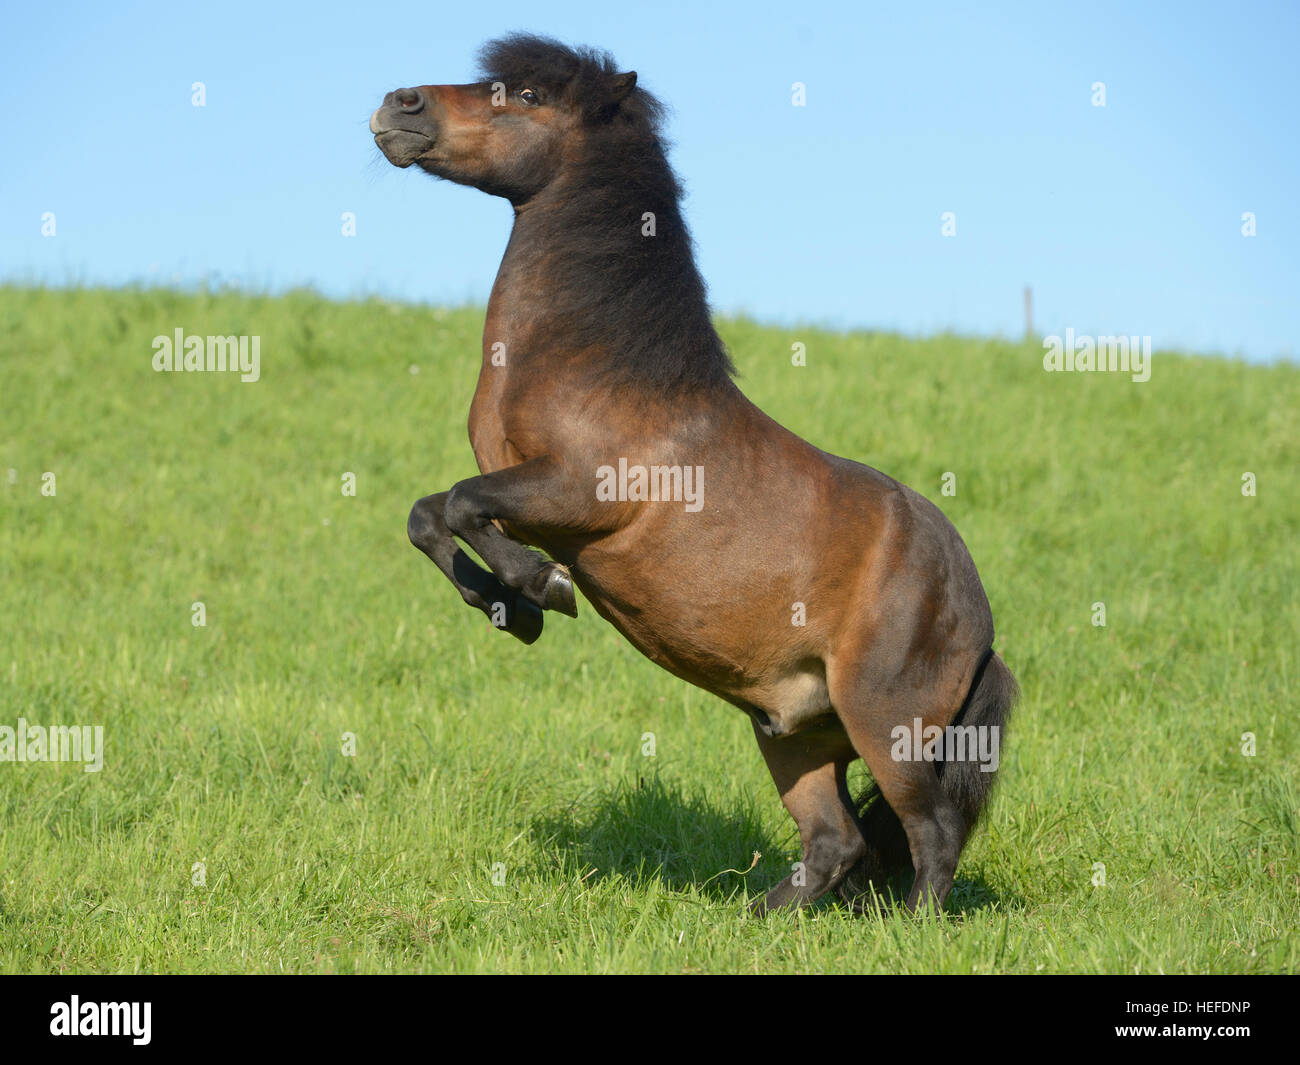 Rearing Shetland pony in the field - Stock Image